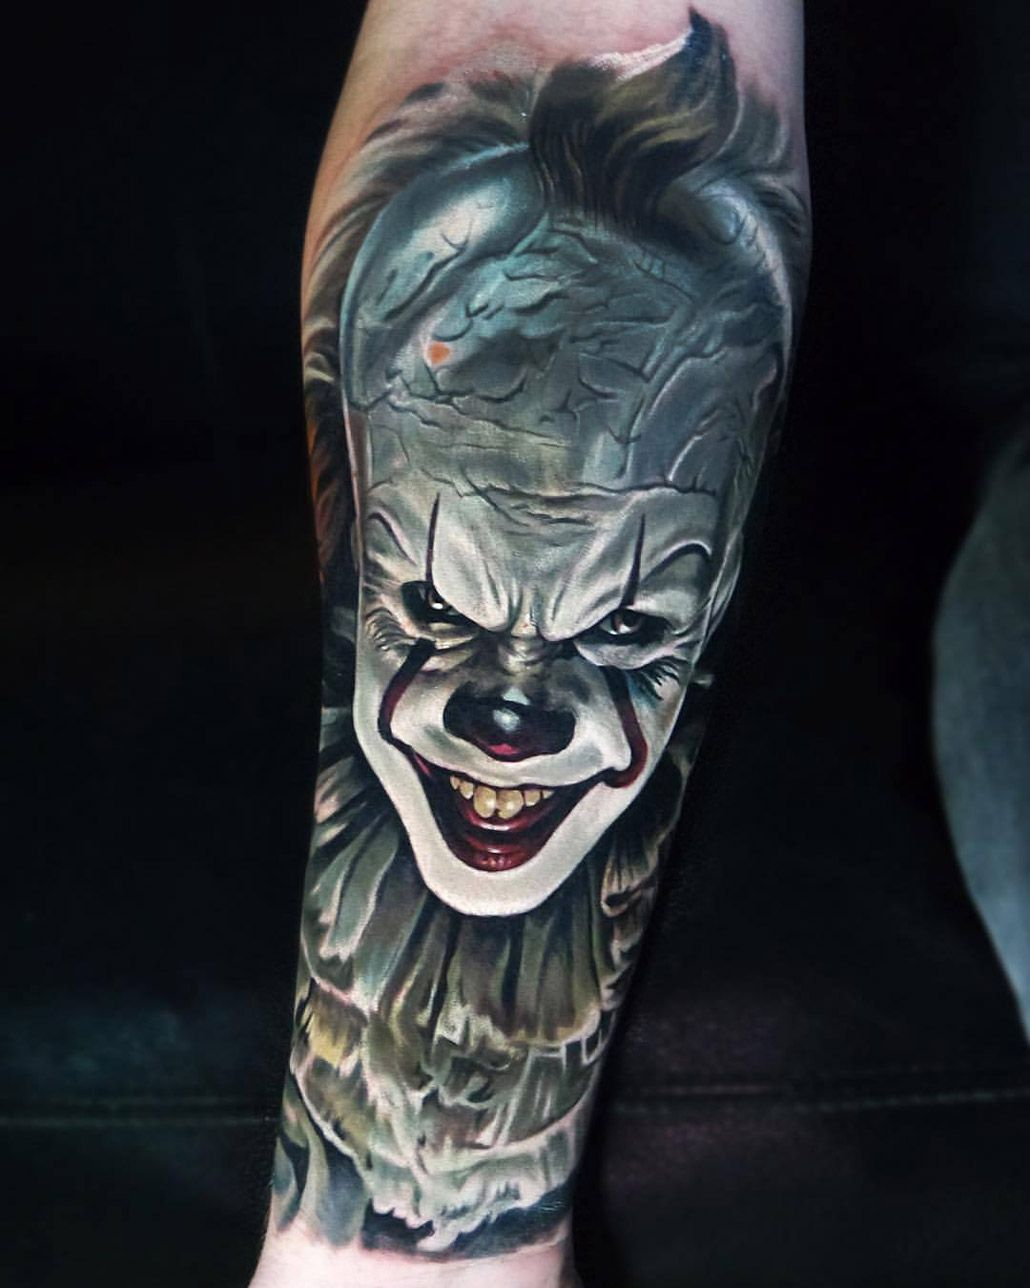 pennywise | halloween art | pinterest | tattoos, tattoo designs and